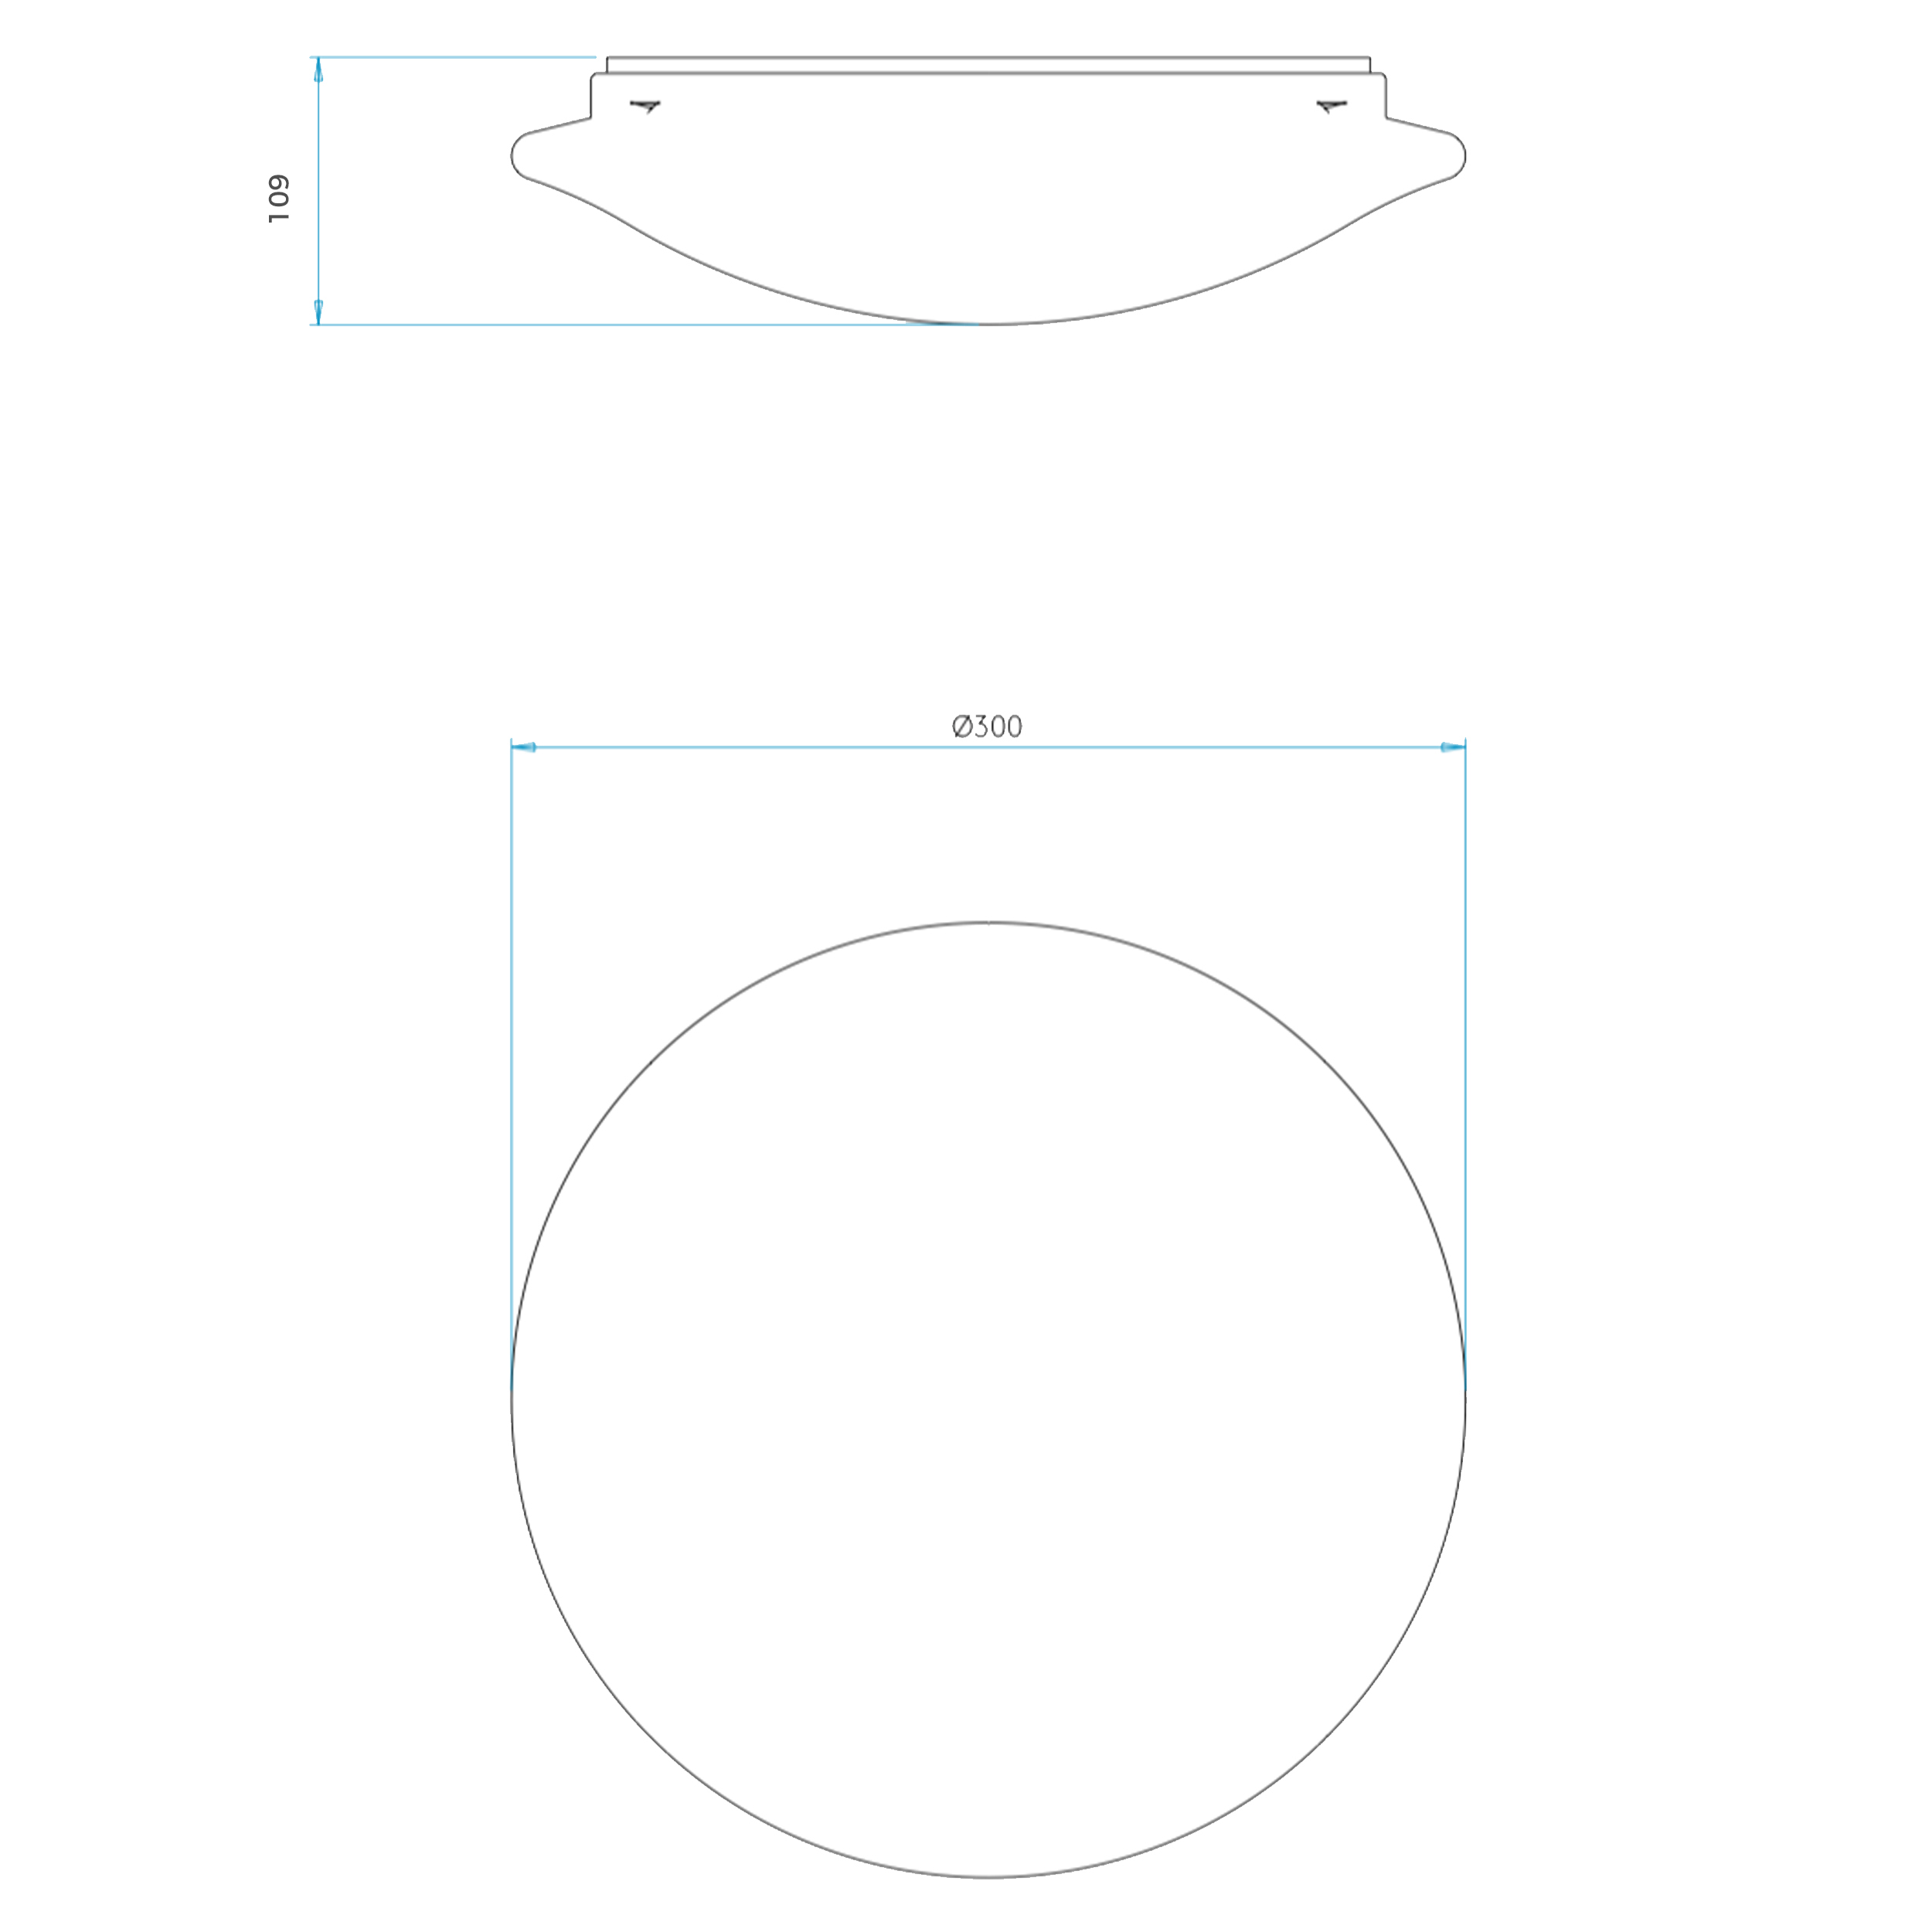 Astro Massa Sensor Led Ceiling Light Line Drawing